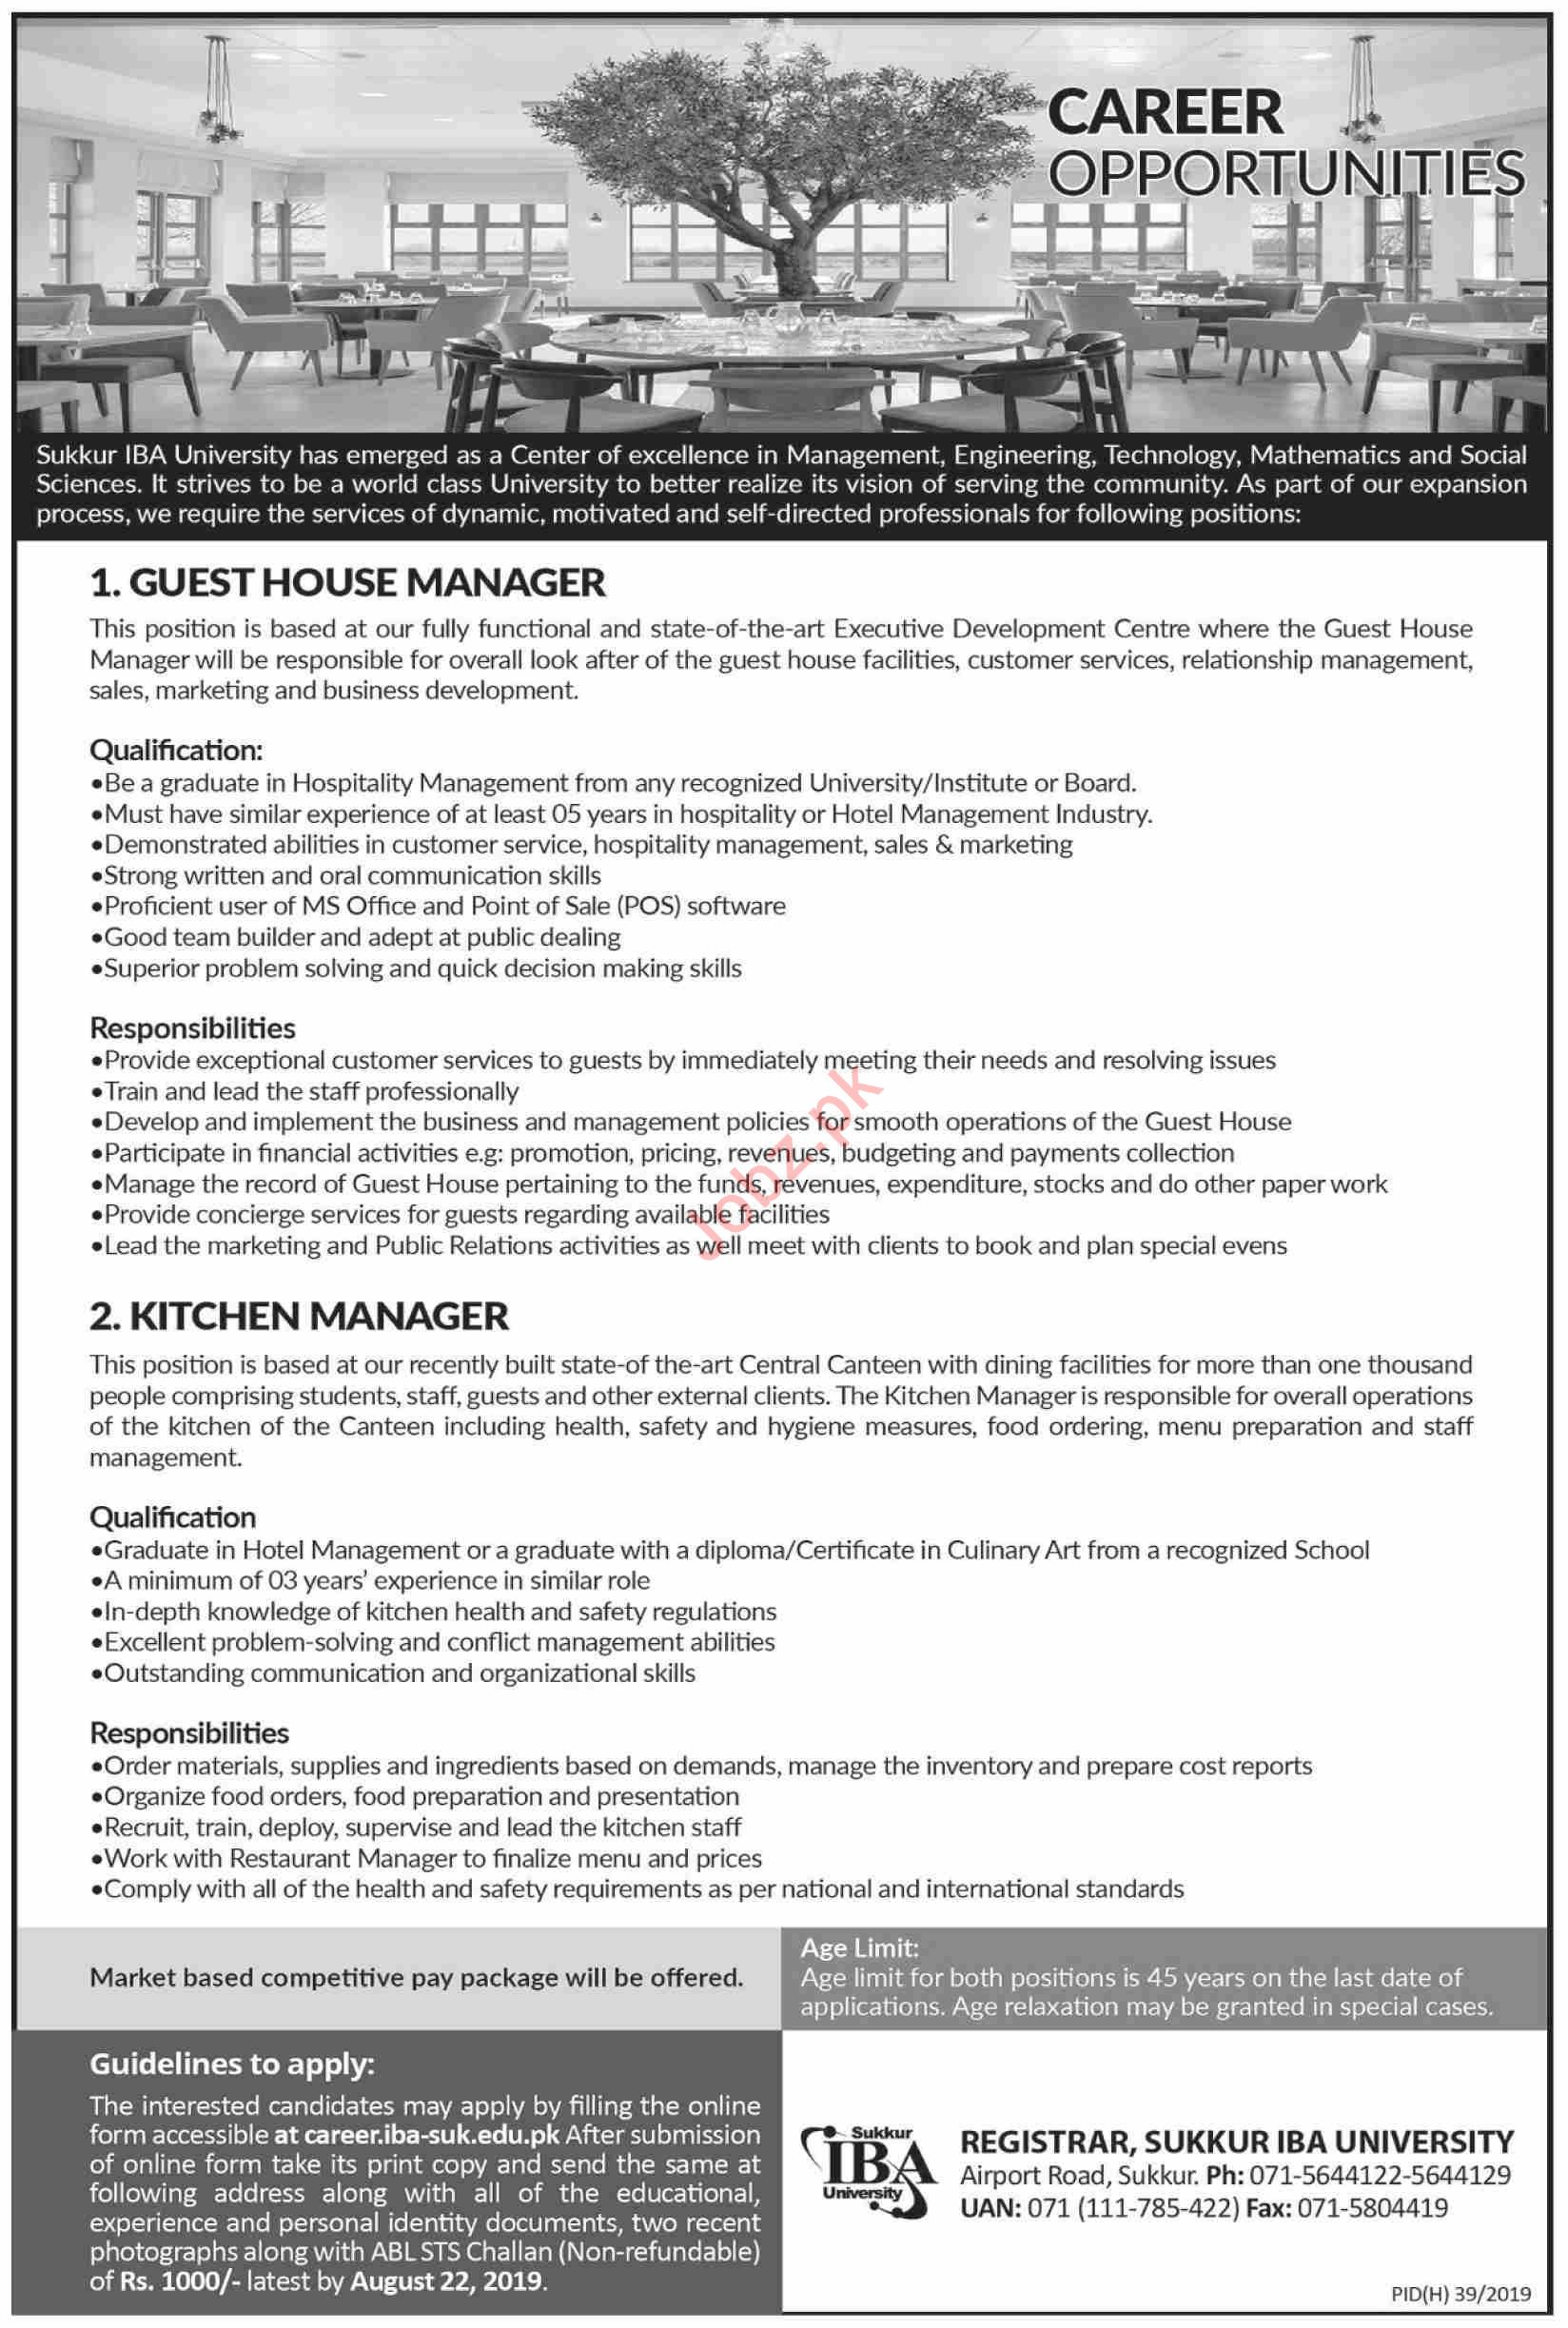 Guest House Manager Kitchen Manager Jobs In Sukkur Iba